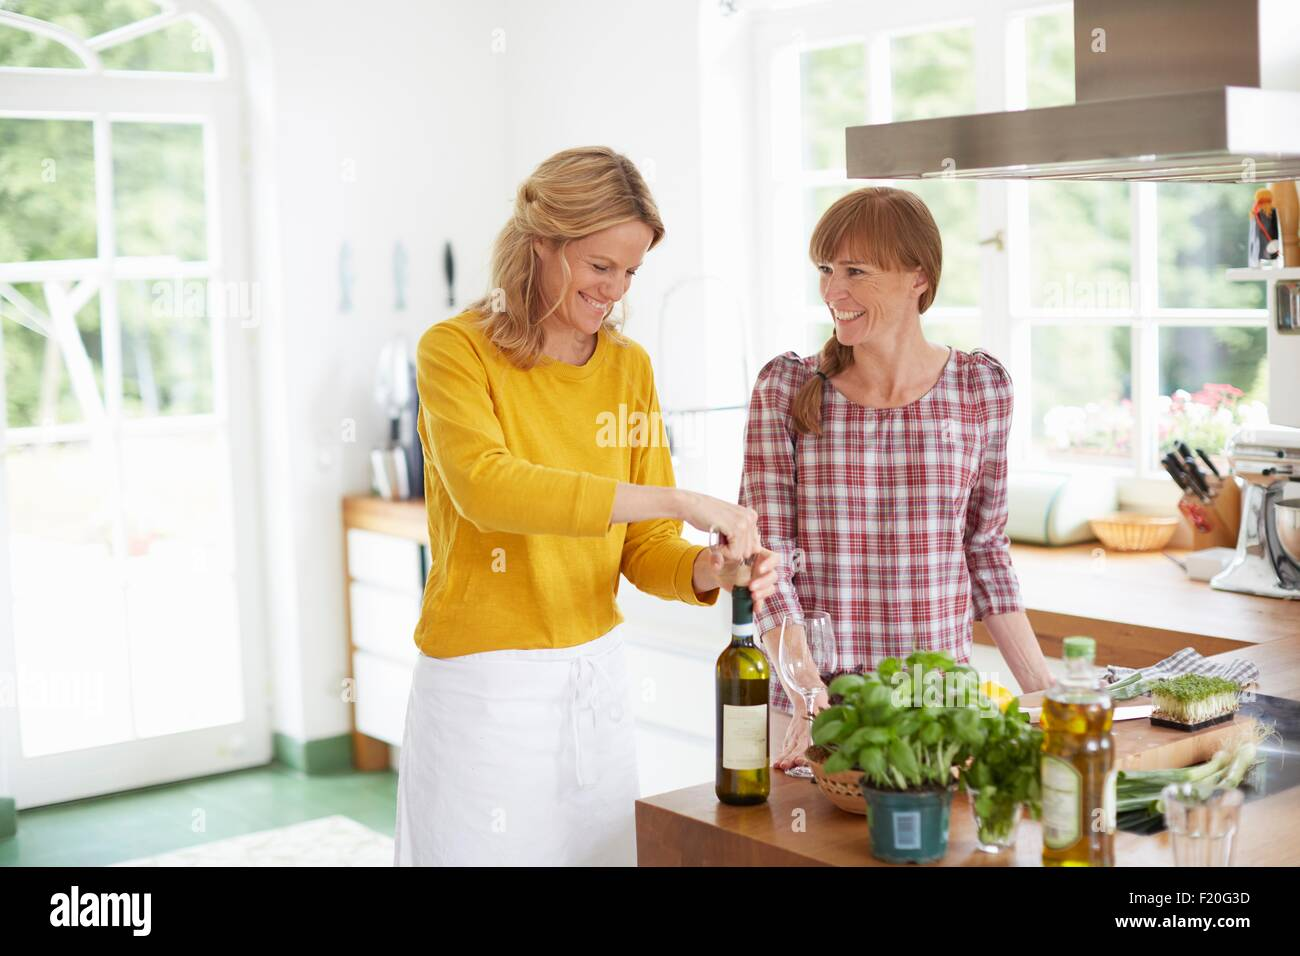 Woman opening wine bottle in kitchen - Stock Image